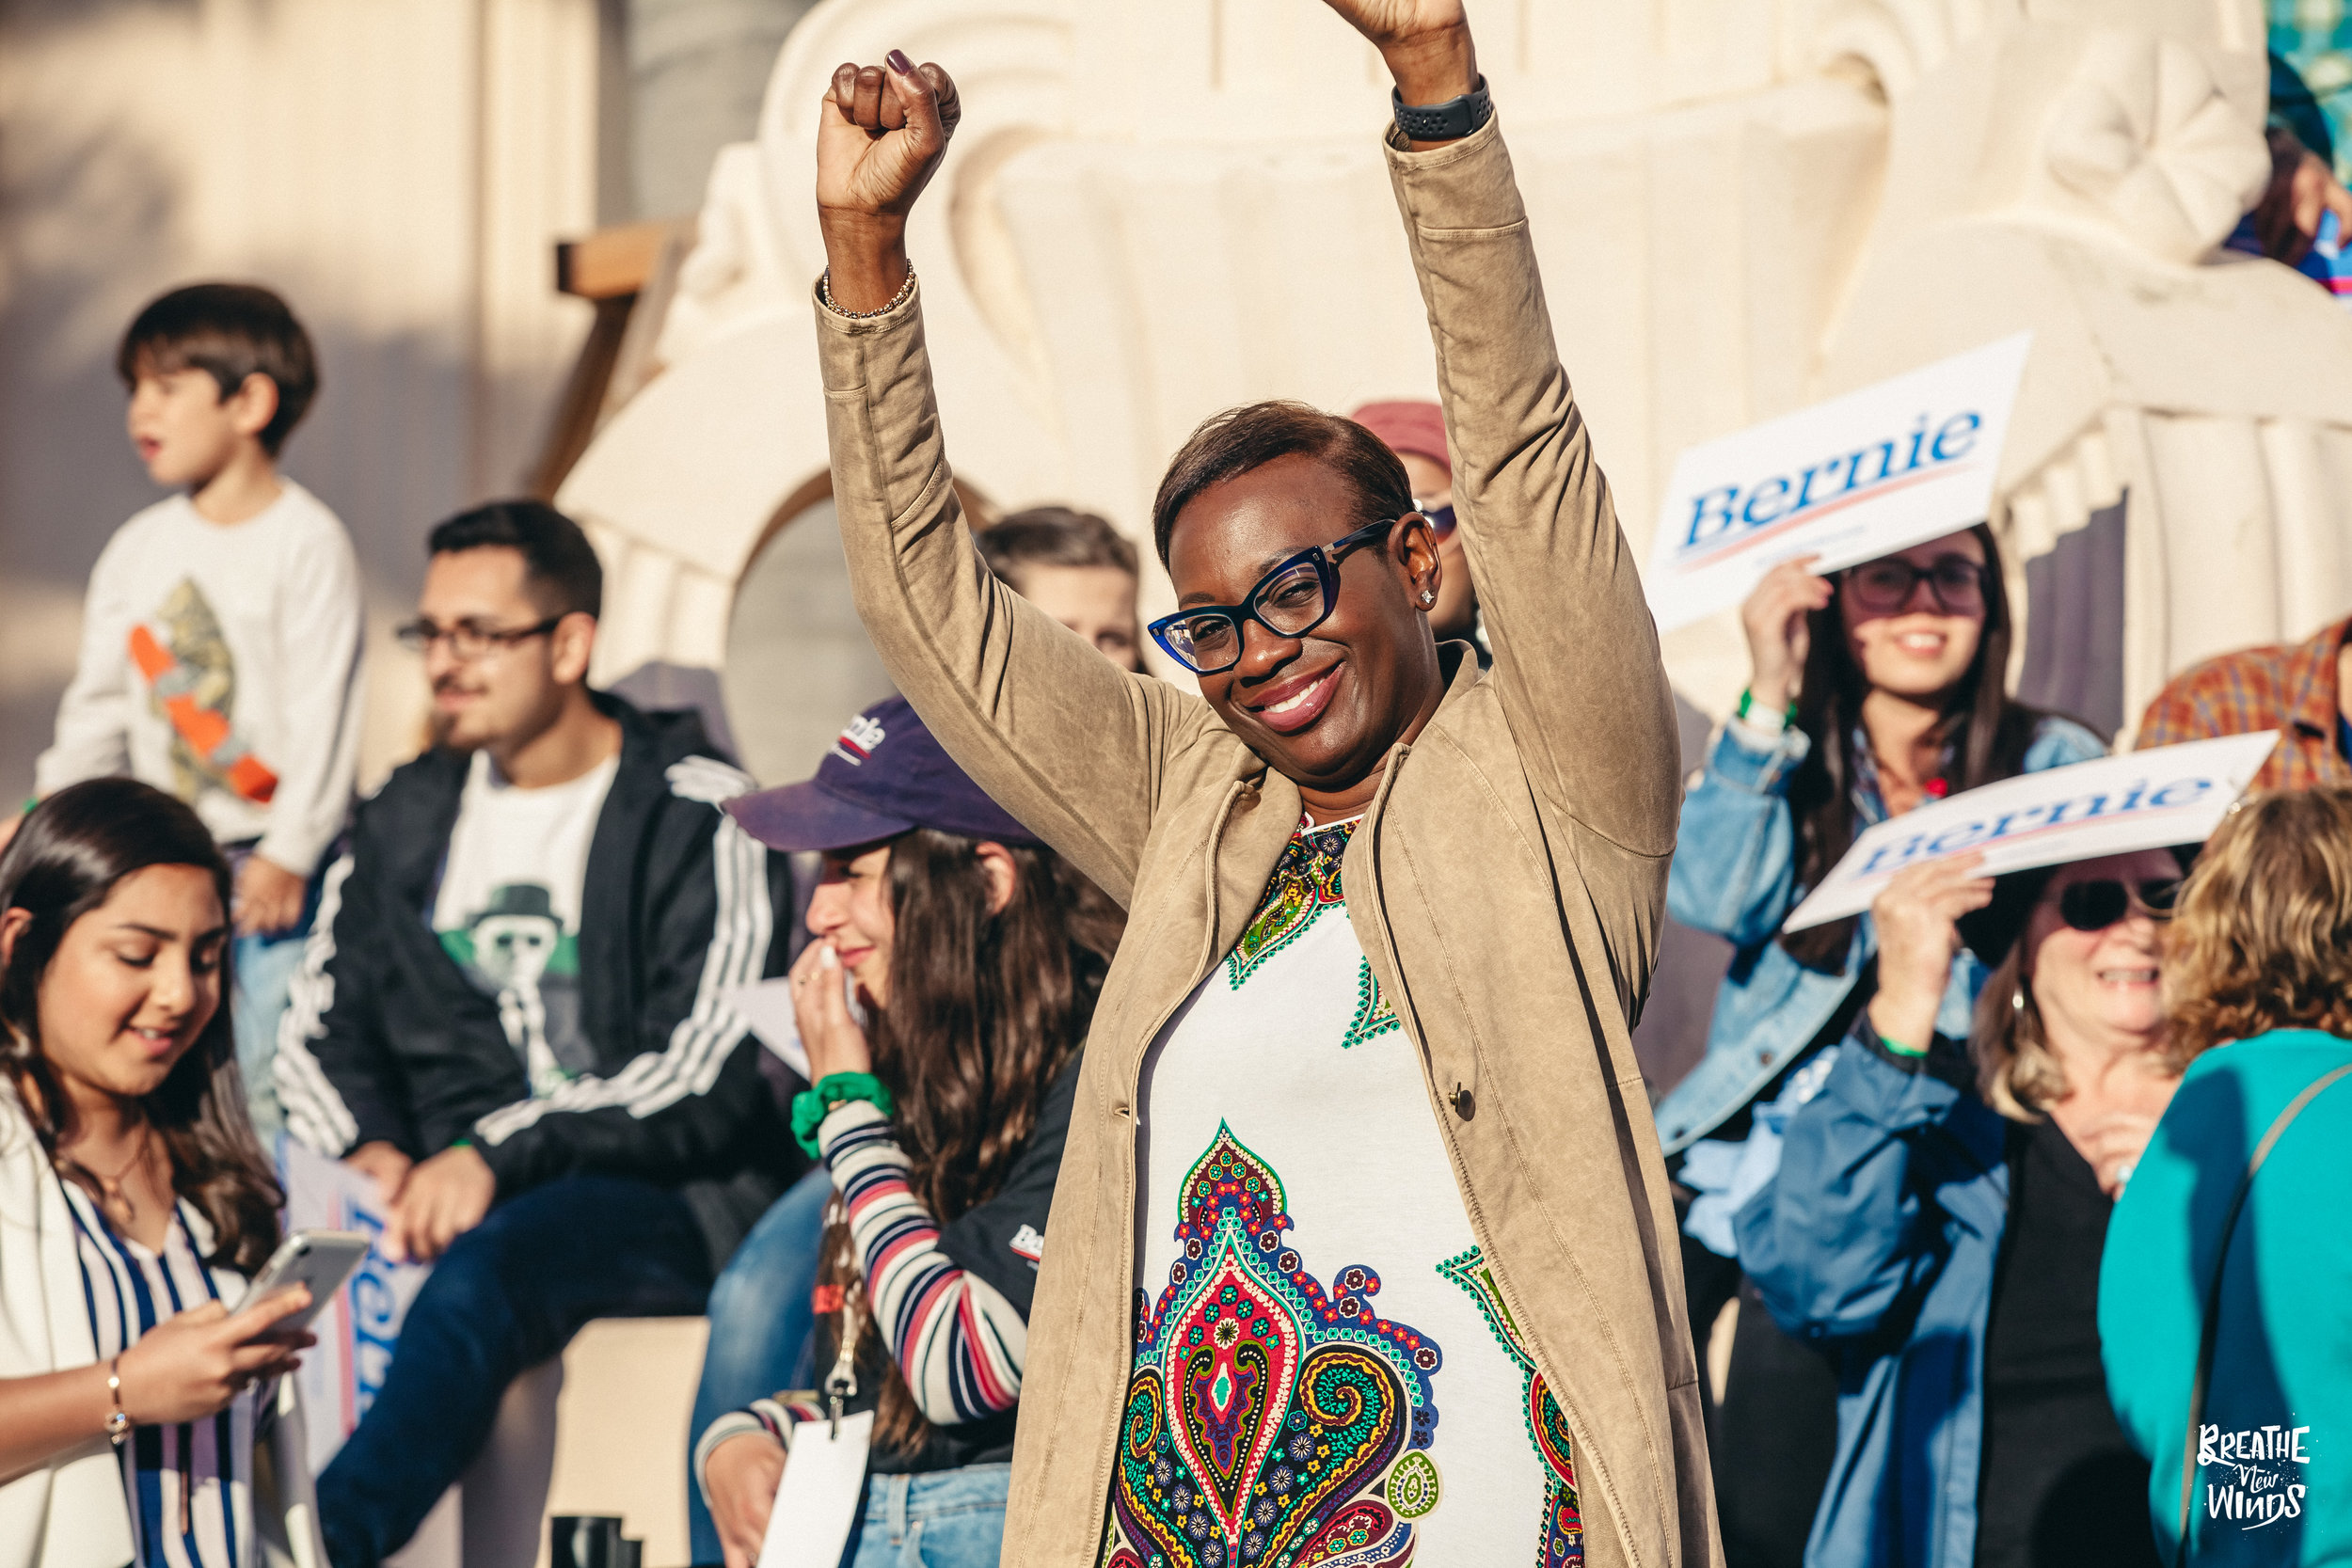 BernieInSD_22March2019-BernieAndFriends (18 of 78).jpg